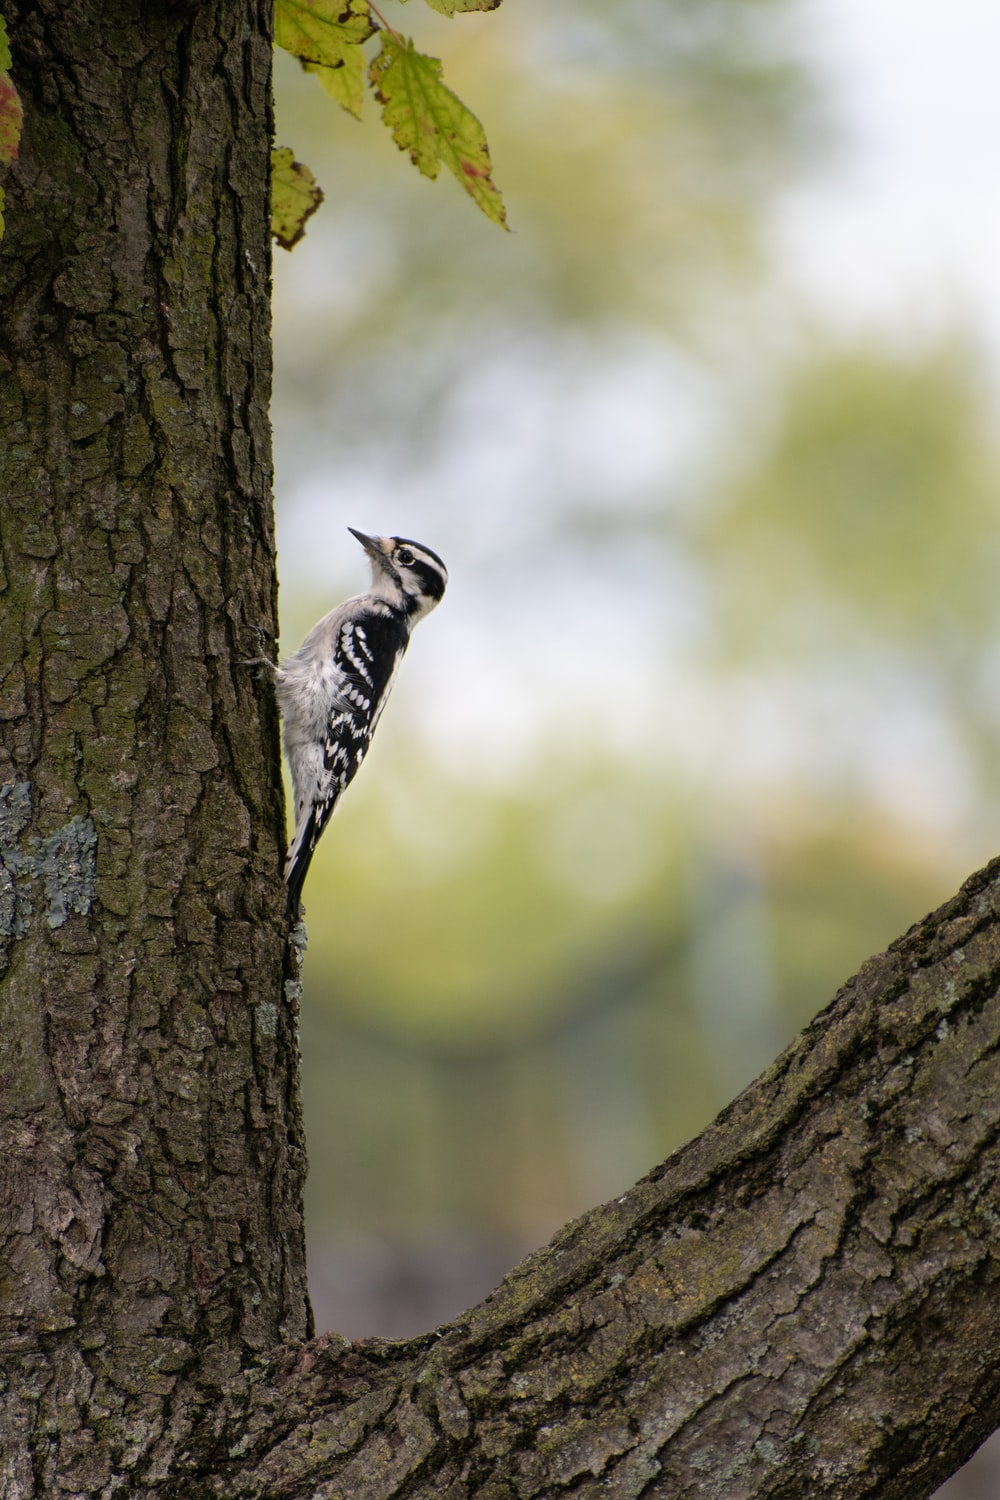 black and white bird on brown tree trunk